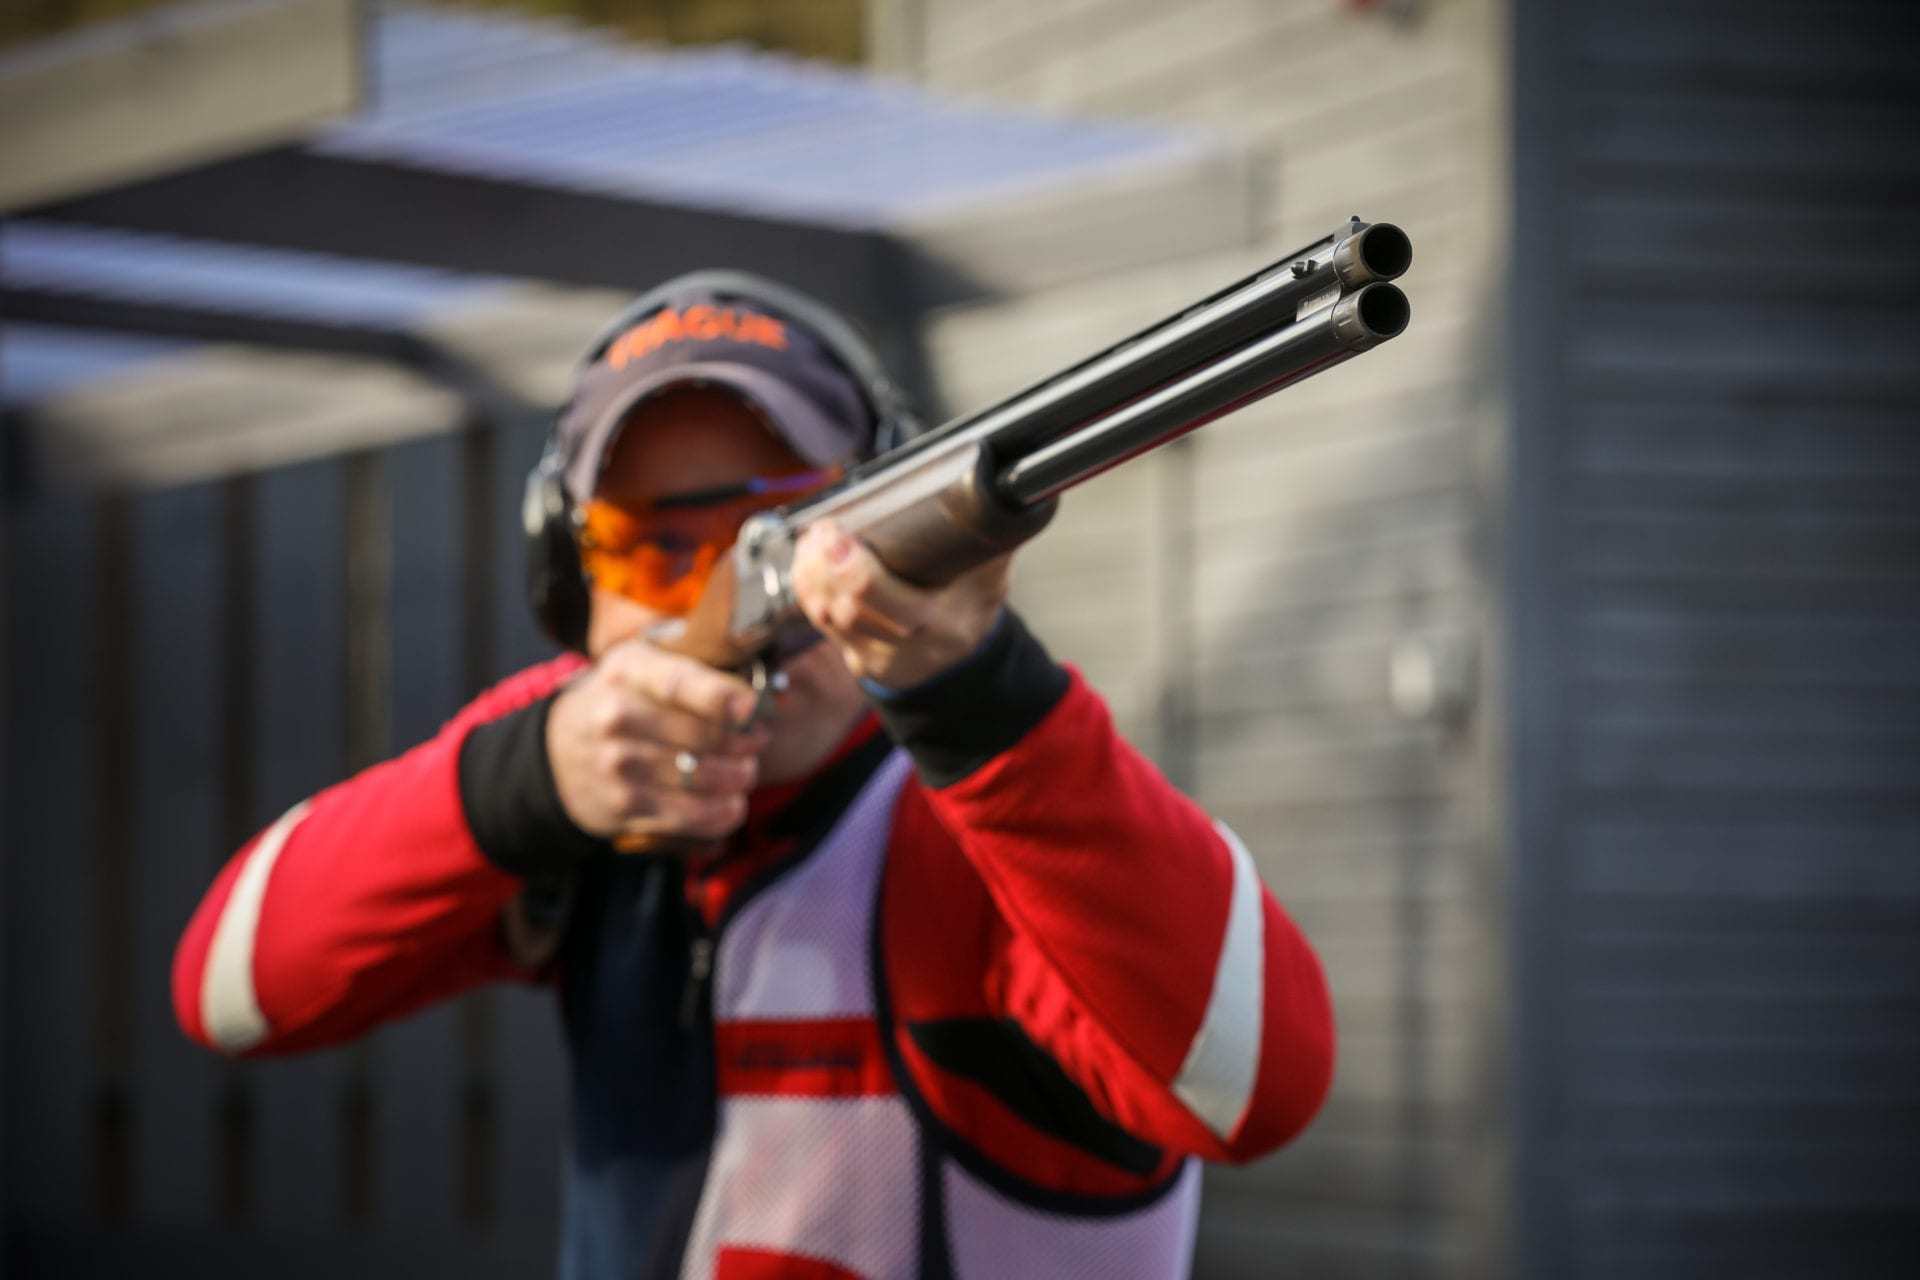 shooting with the SP Shooting Aid fitted